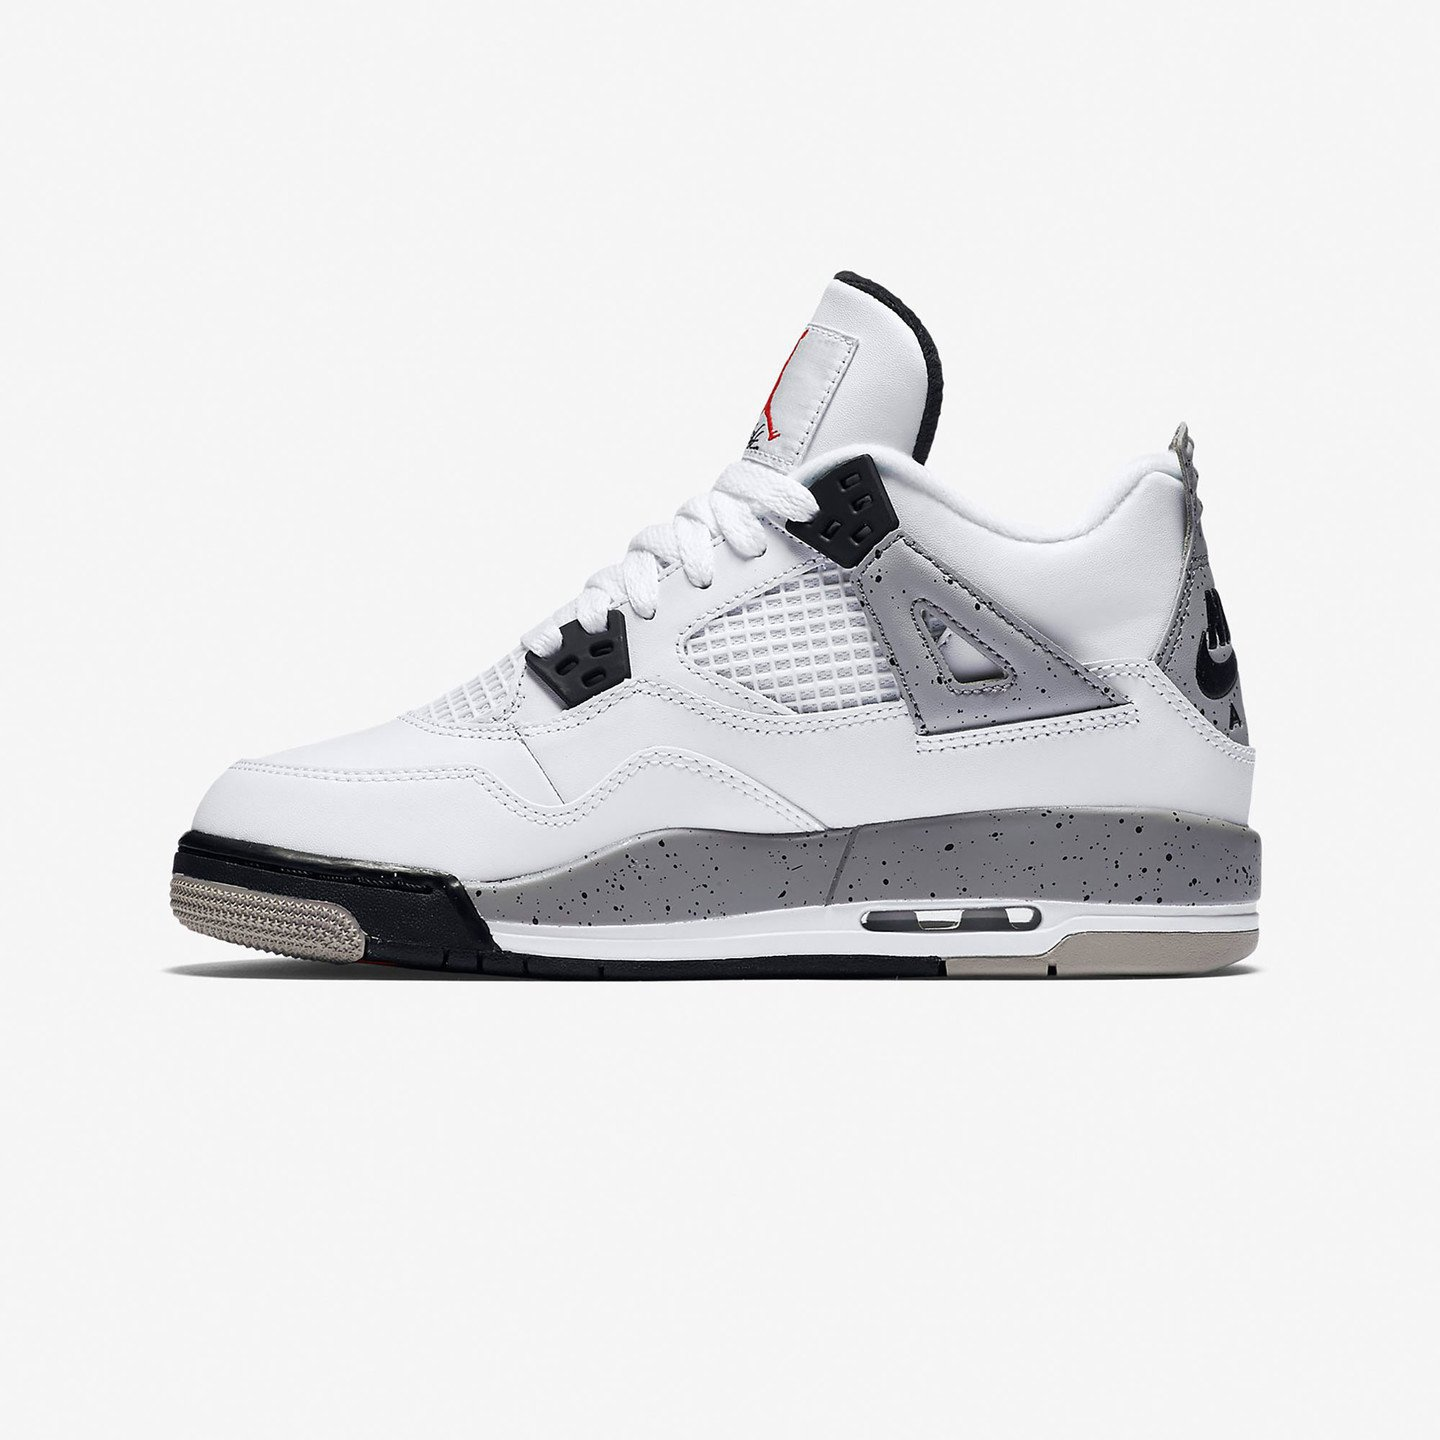 Nike Air Jordan 4 Retro GS Cement White / Fire Red / Tech Grey / Black 836016-192-39